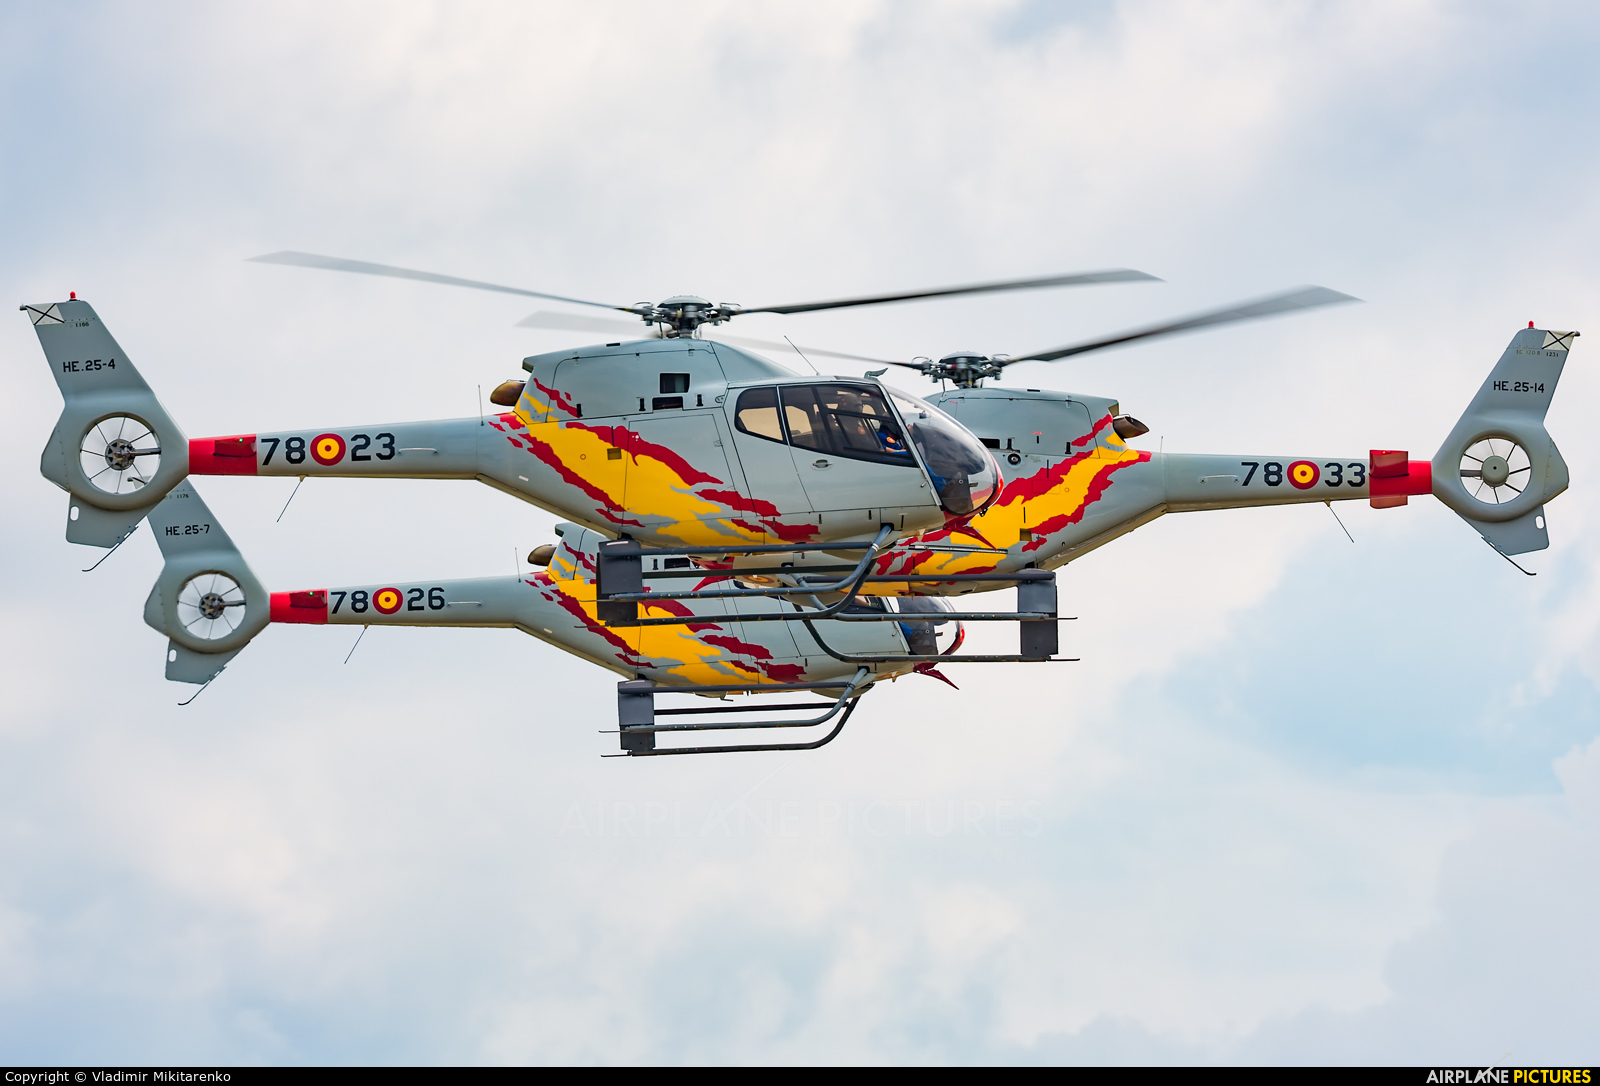 Spain - Air Force: Patrulla ASPA HE.25-4 aircraft at Radom - Sadków